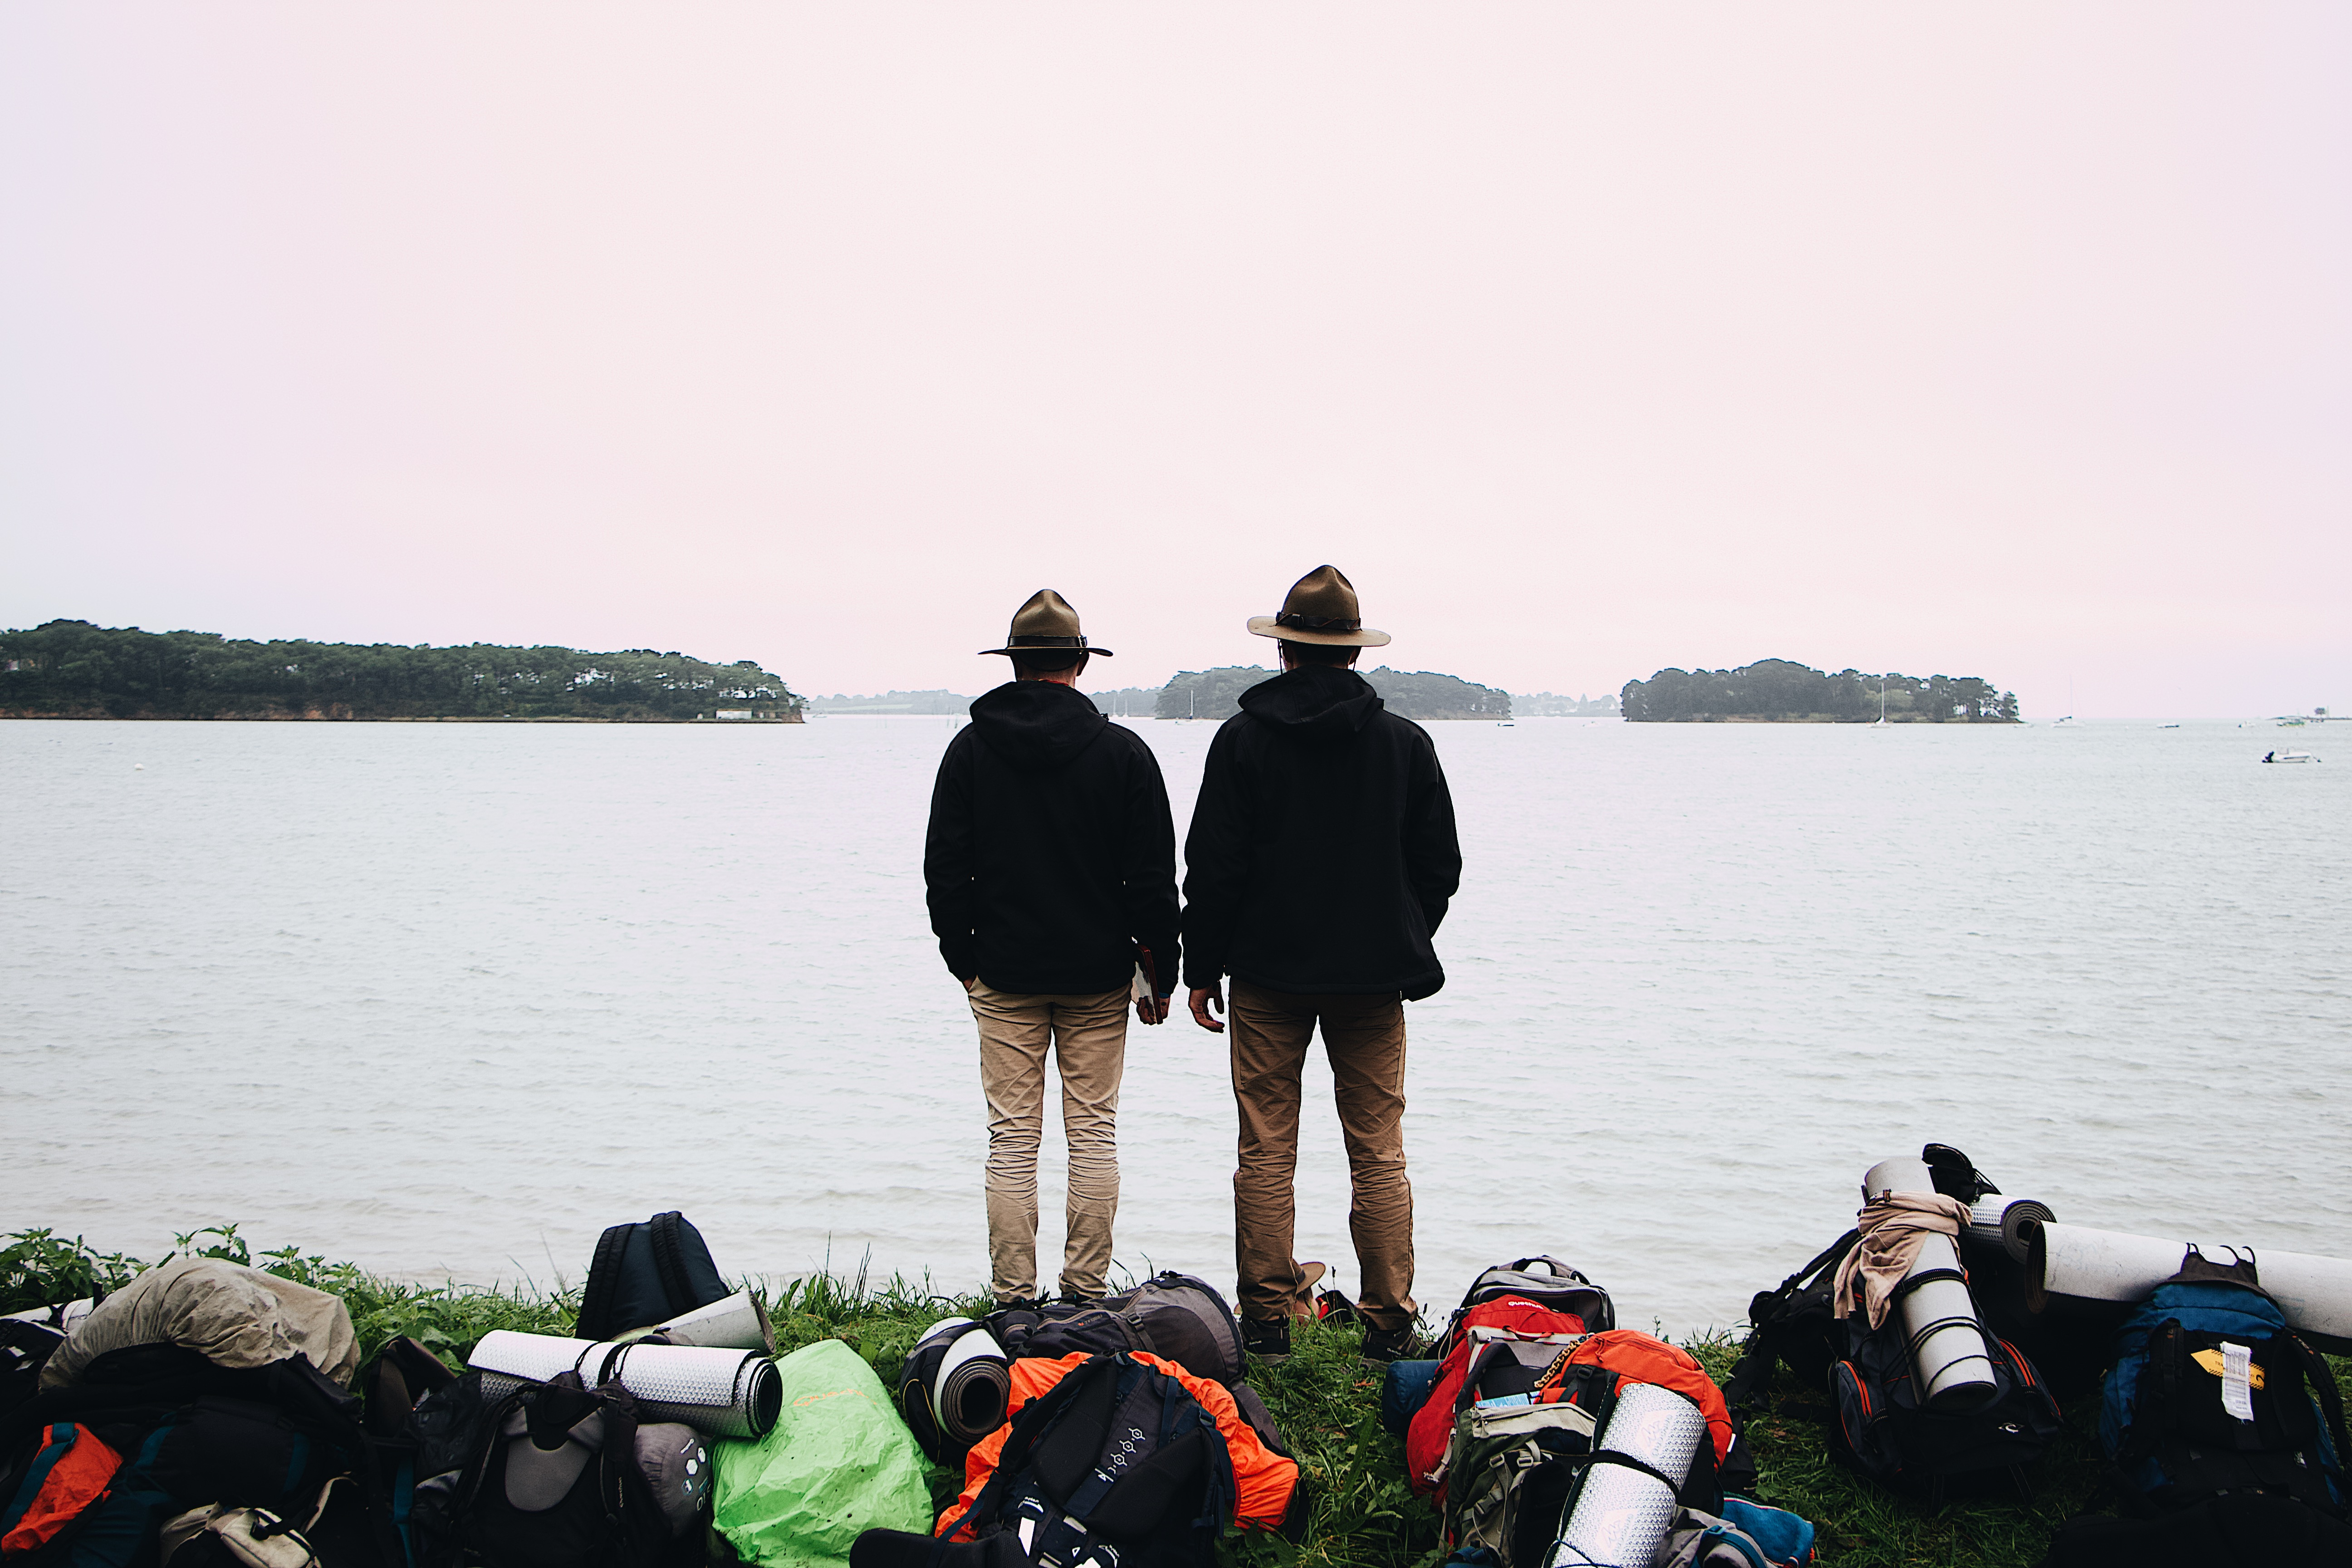 Two Men With Hats and Black Jackets Stand Near Body of Water